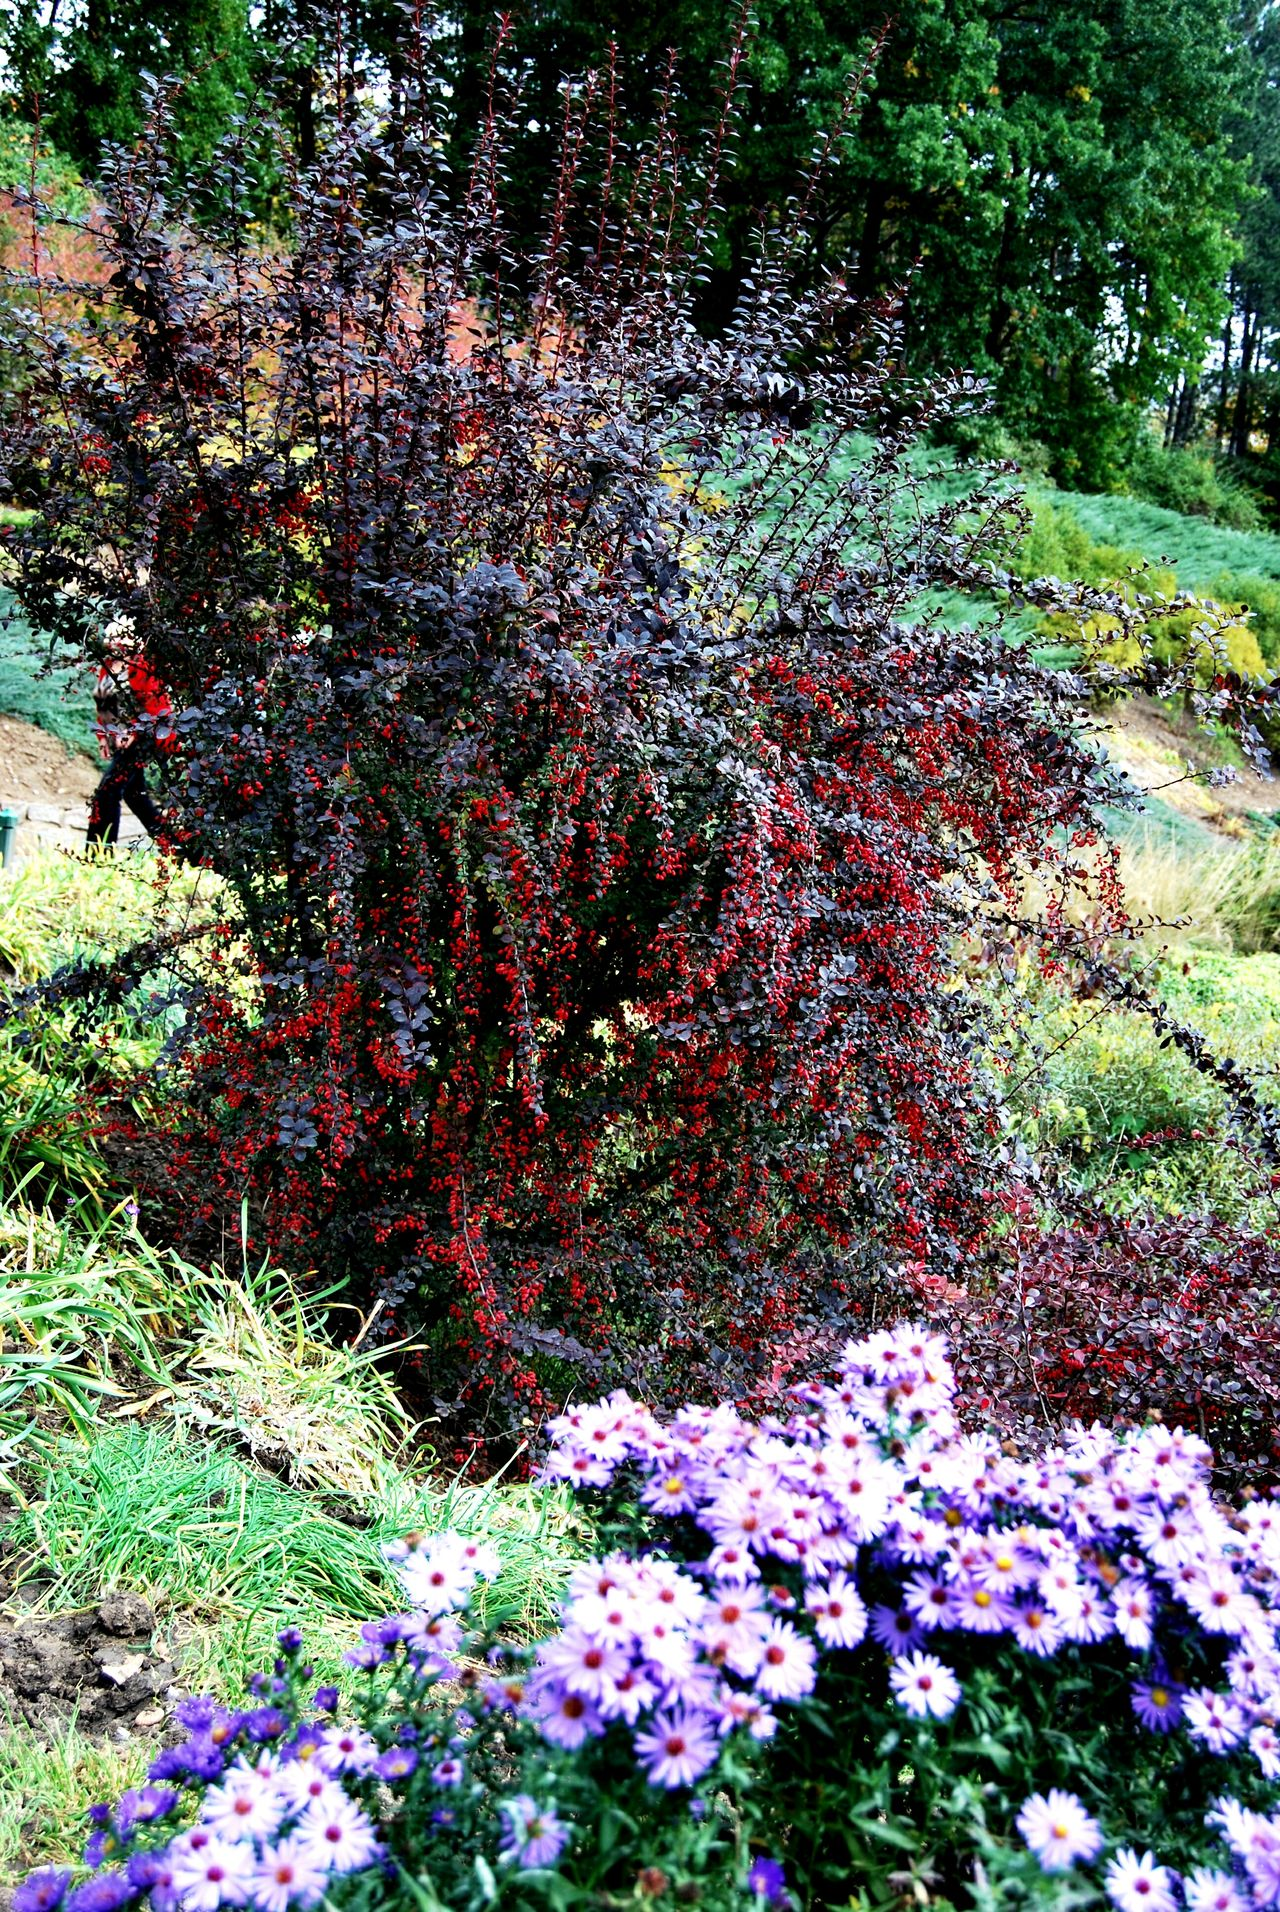 Plant Multi Colored Fragility Beauty In Nature Ukraine 💙💛 No People Outdoors Day Beauty Of Nature Cityparking Dendropark Red Tree Autumnbeauty Autumn🍁🍁🍁 Autumn Is Here...Fall Mood! Sofiïvka Park Tree Red Blooming Berries On A Branch Nature Flower Autumn Colours Autumn Flowers Autumn Forest